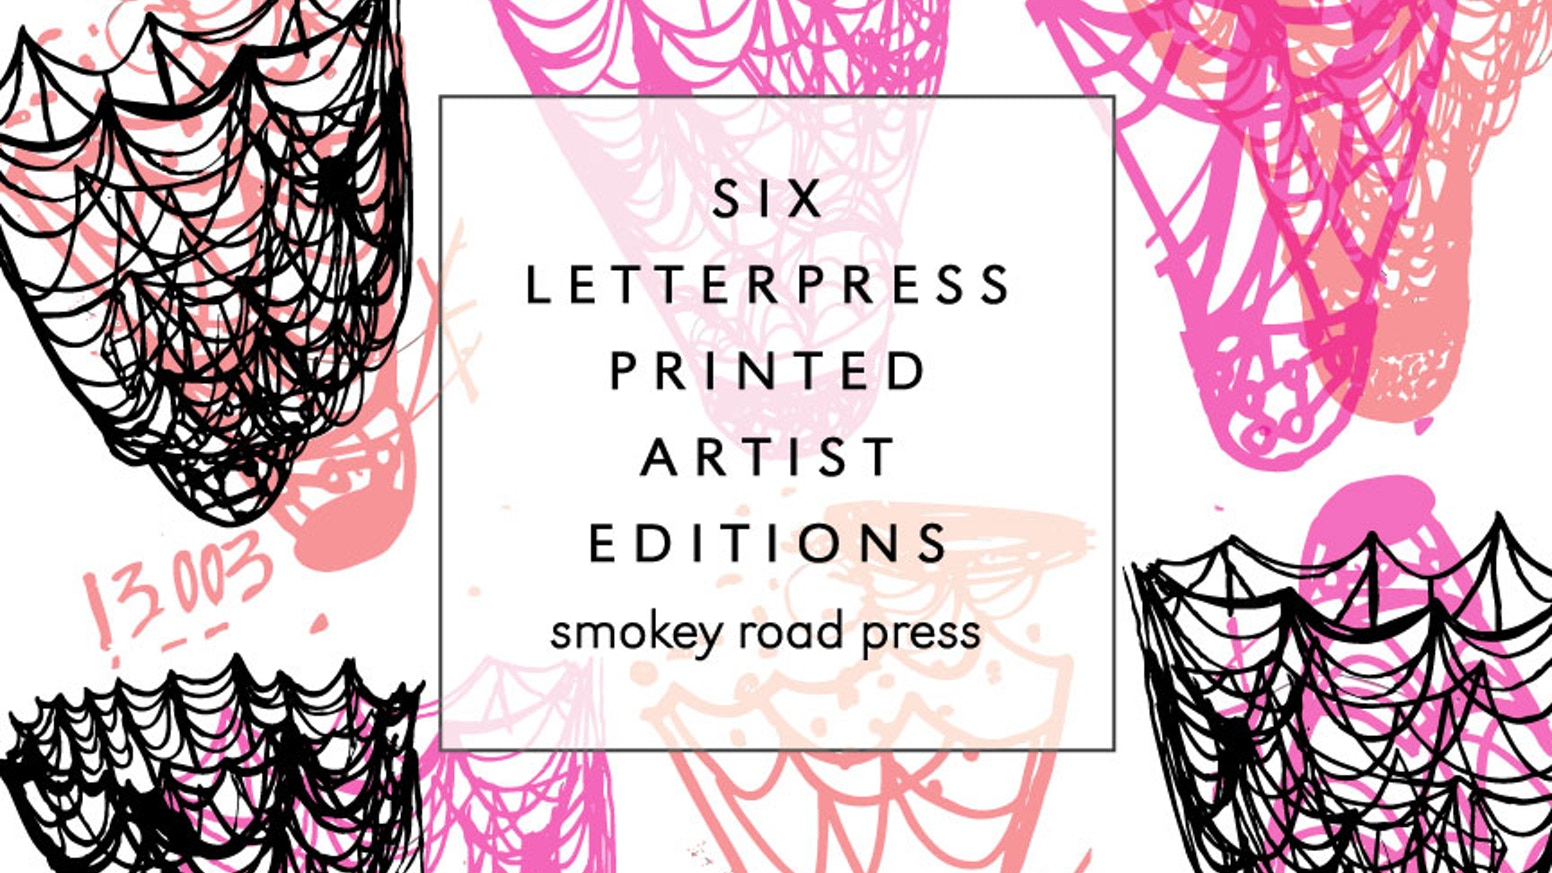 six letterpress printed artist editions by smokey road press by